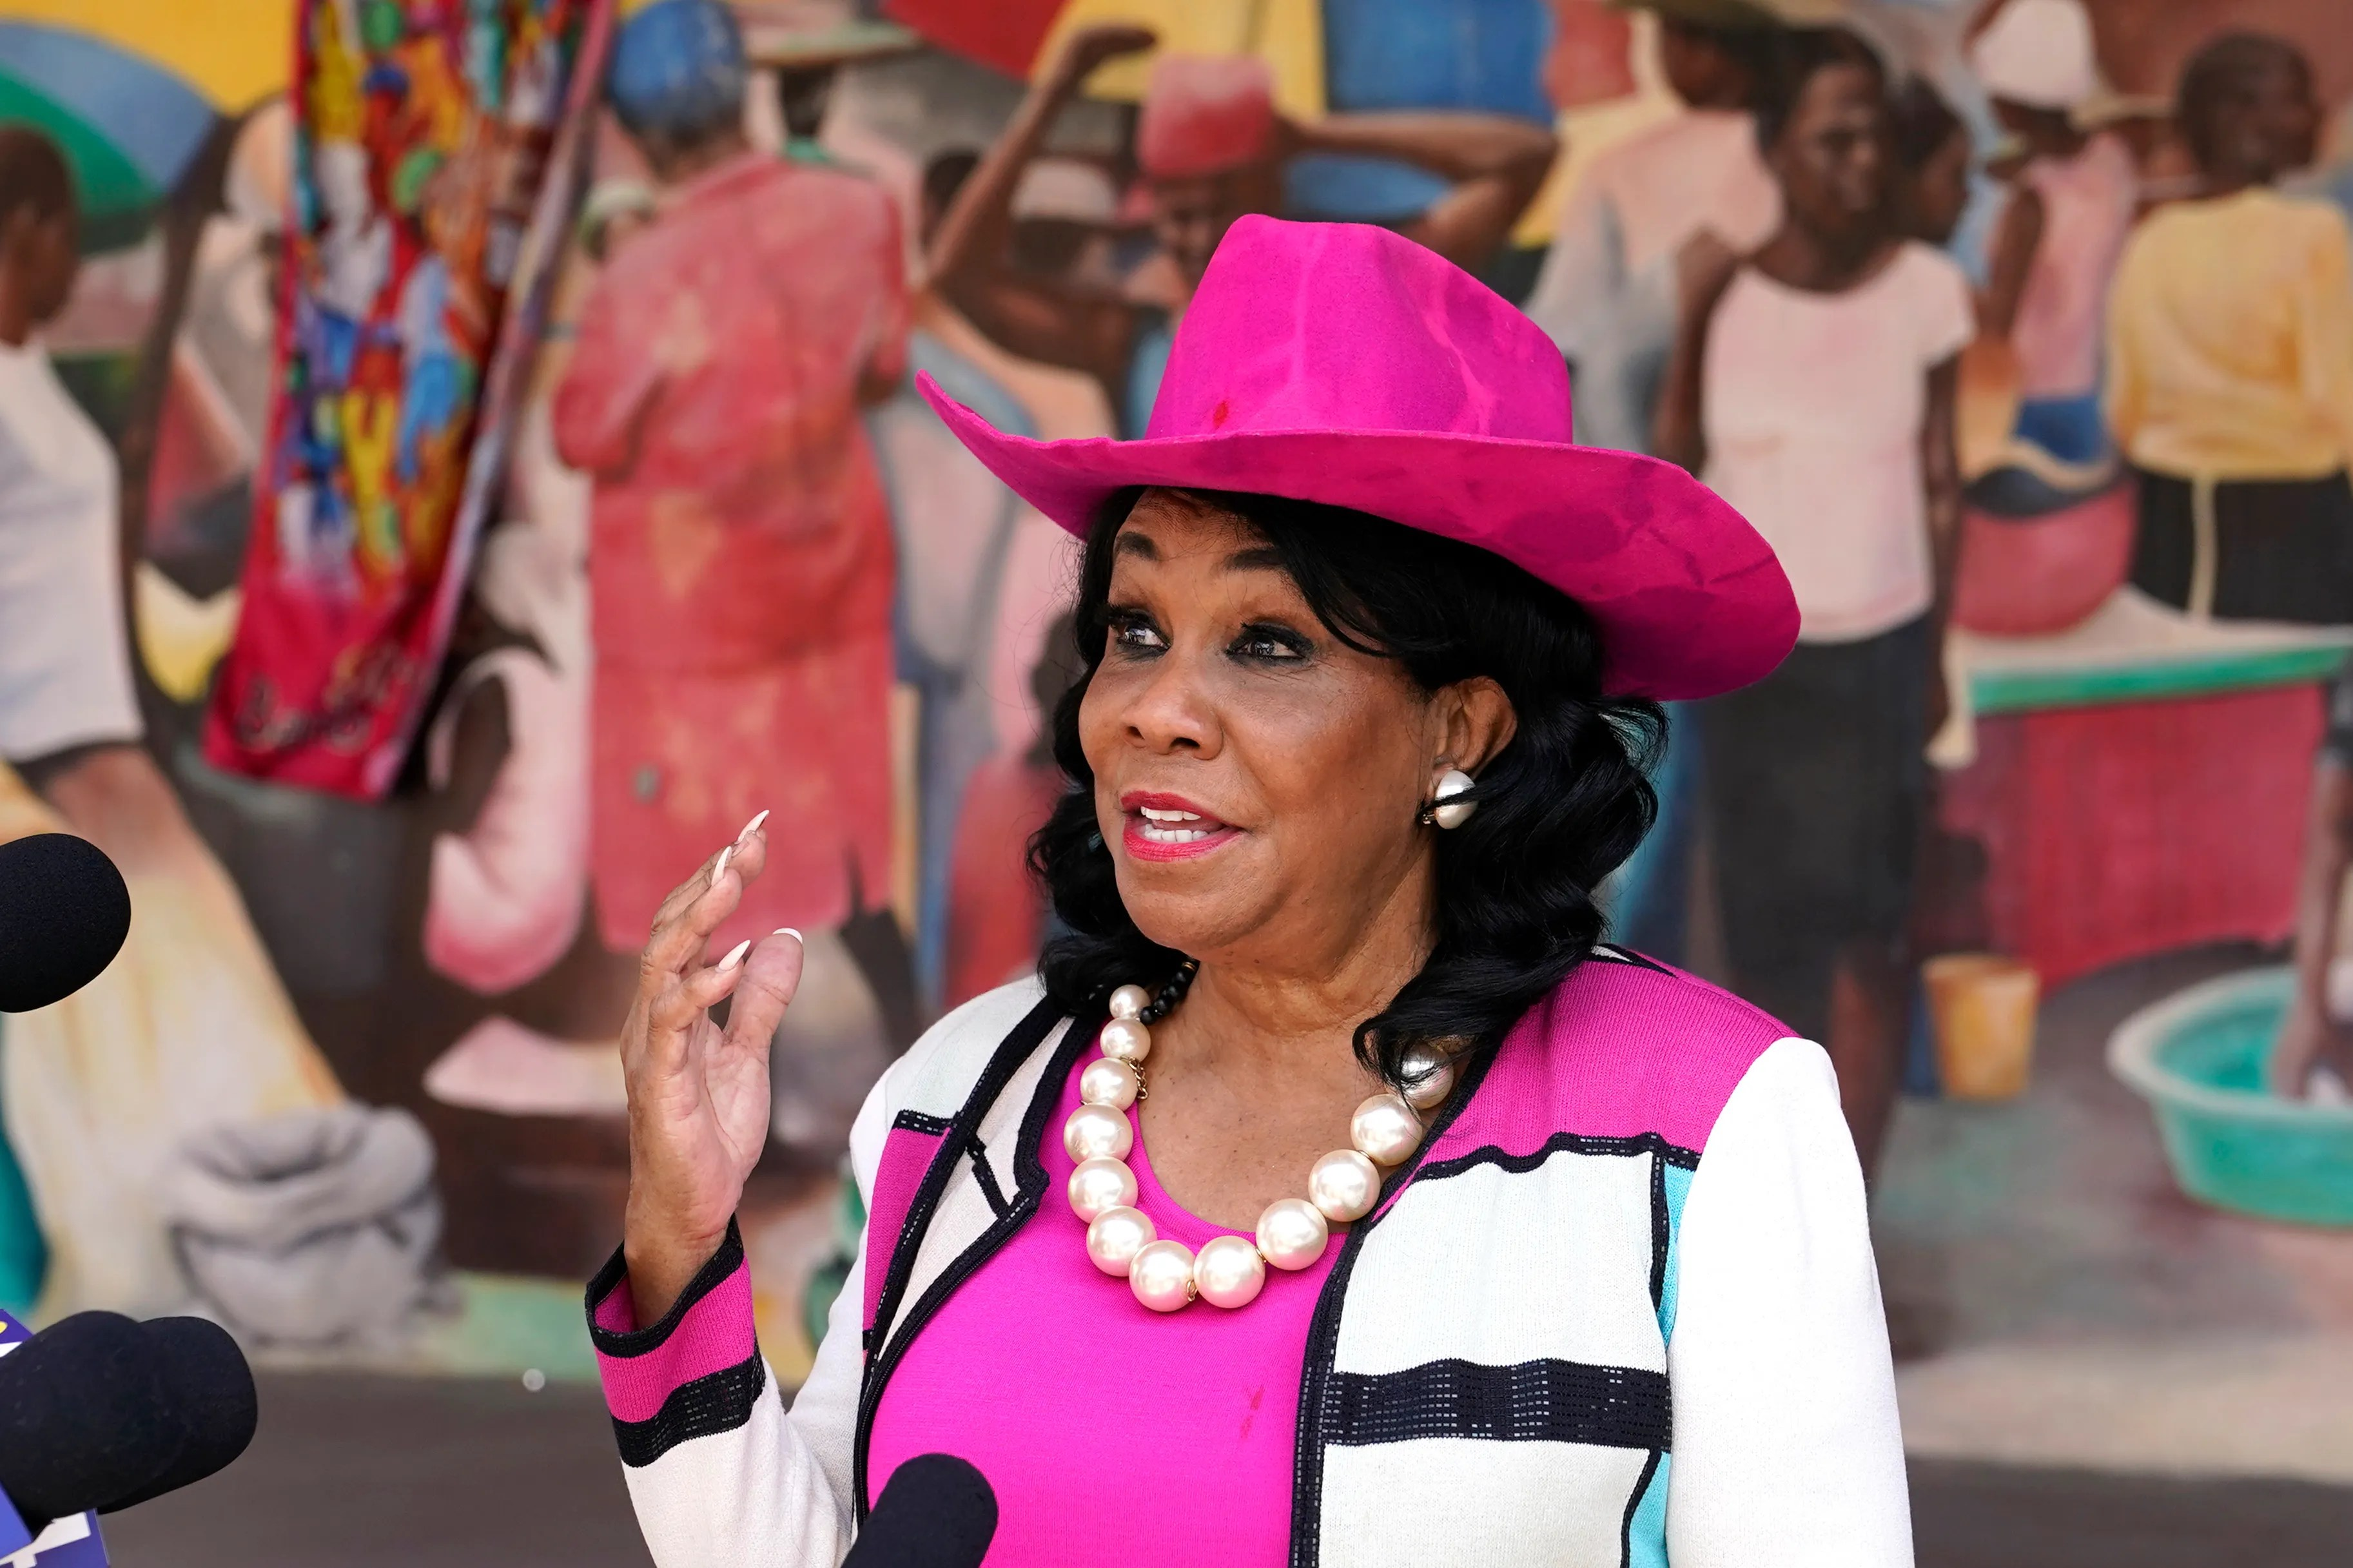 Congresswoman Frederica Wilson speaks outside the Little Haiti Cultural Center in Miami, May 25, 2021, shortly after the Biden administration agreed to protect Haitian refugees living in the United States from deportation.